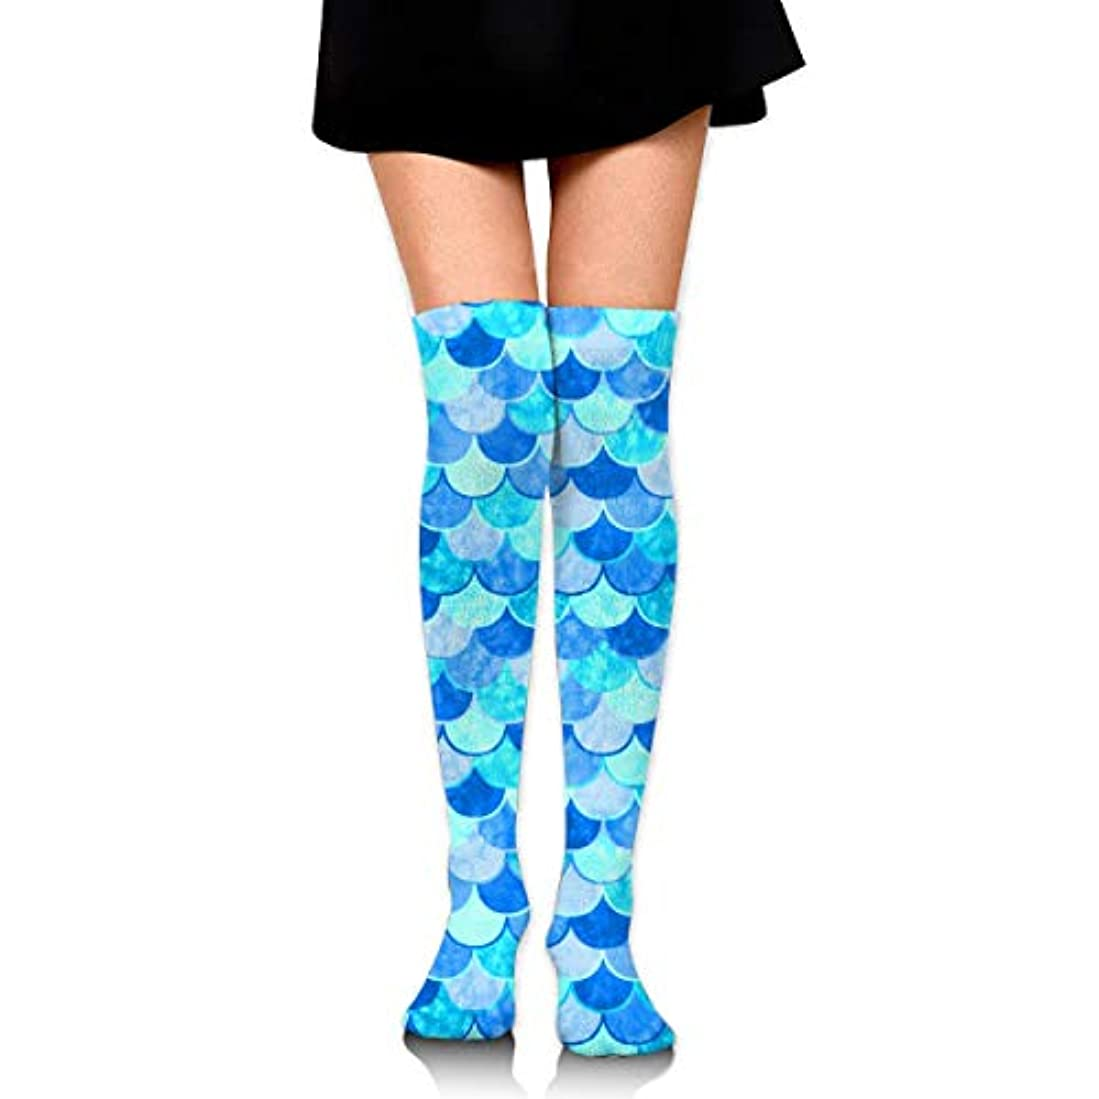 大きさ中性理想的にはMKLOS 通気性 圧縮ソックス Breathable Classic Warmer Tube Leg Stockings Sky Blue Mermaid Fish Scale Exotic Psychedelic Print...